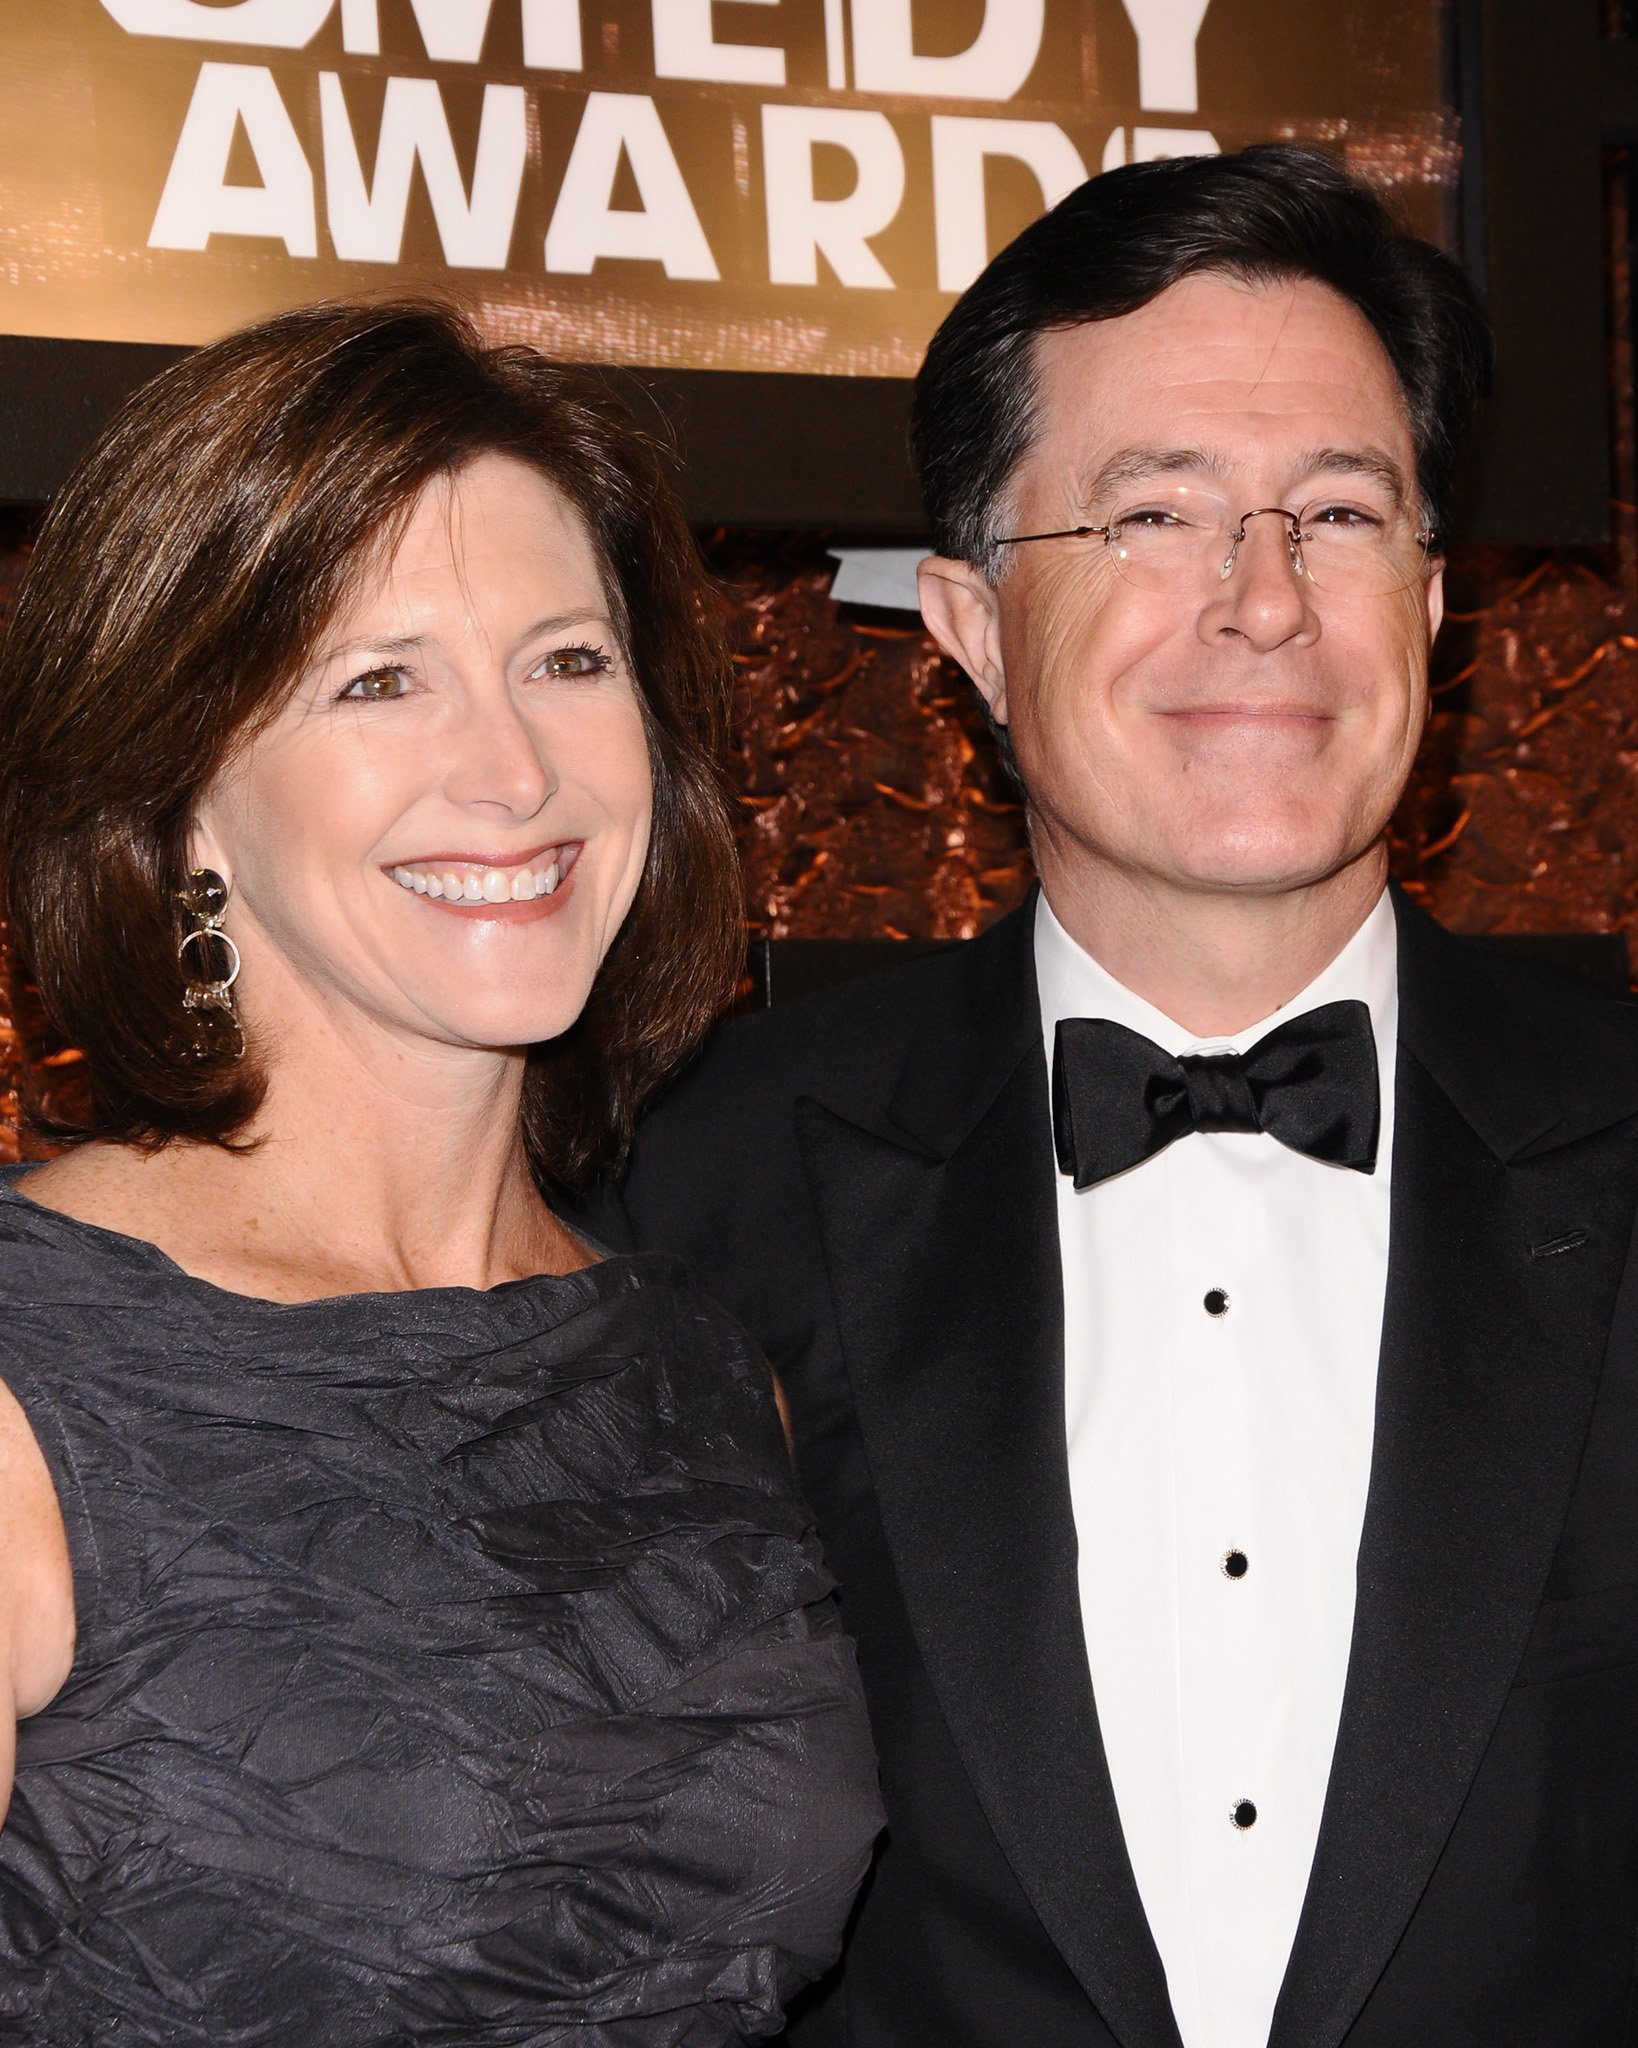 Evelyn McGee and Stephen Colbert at the First Annual The Comedy Awards in New York City on March 26, 2011